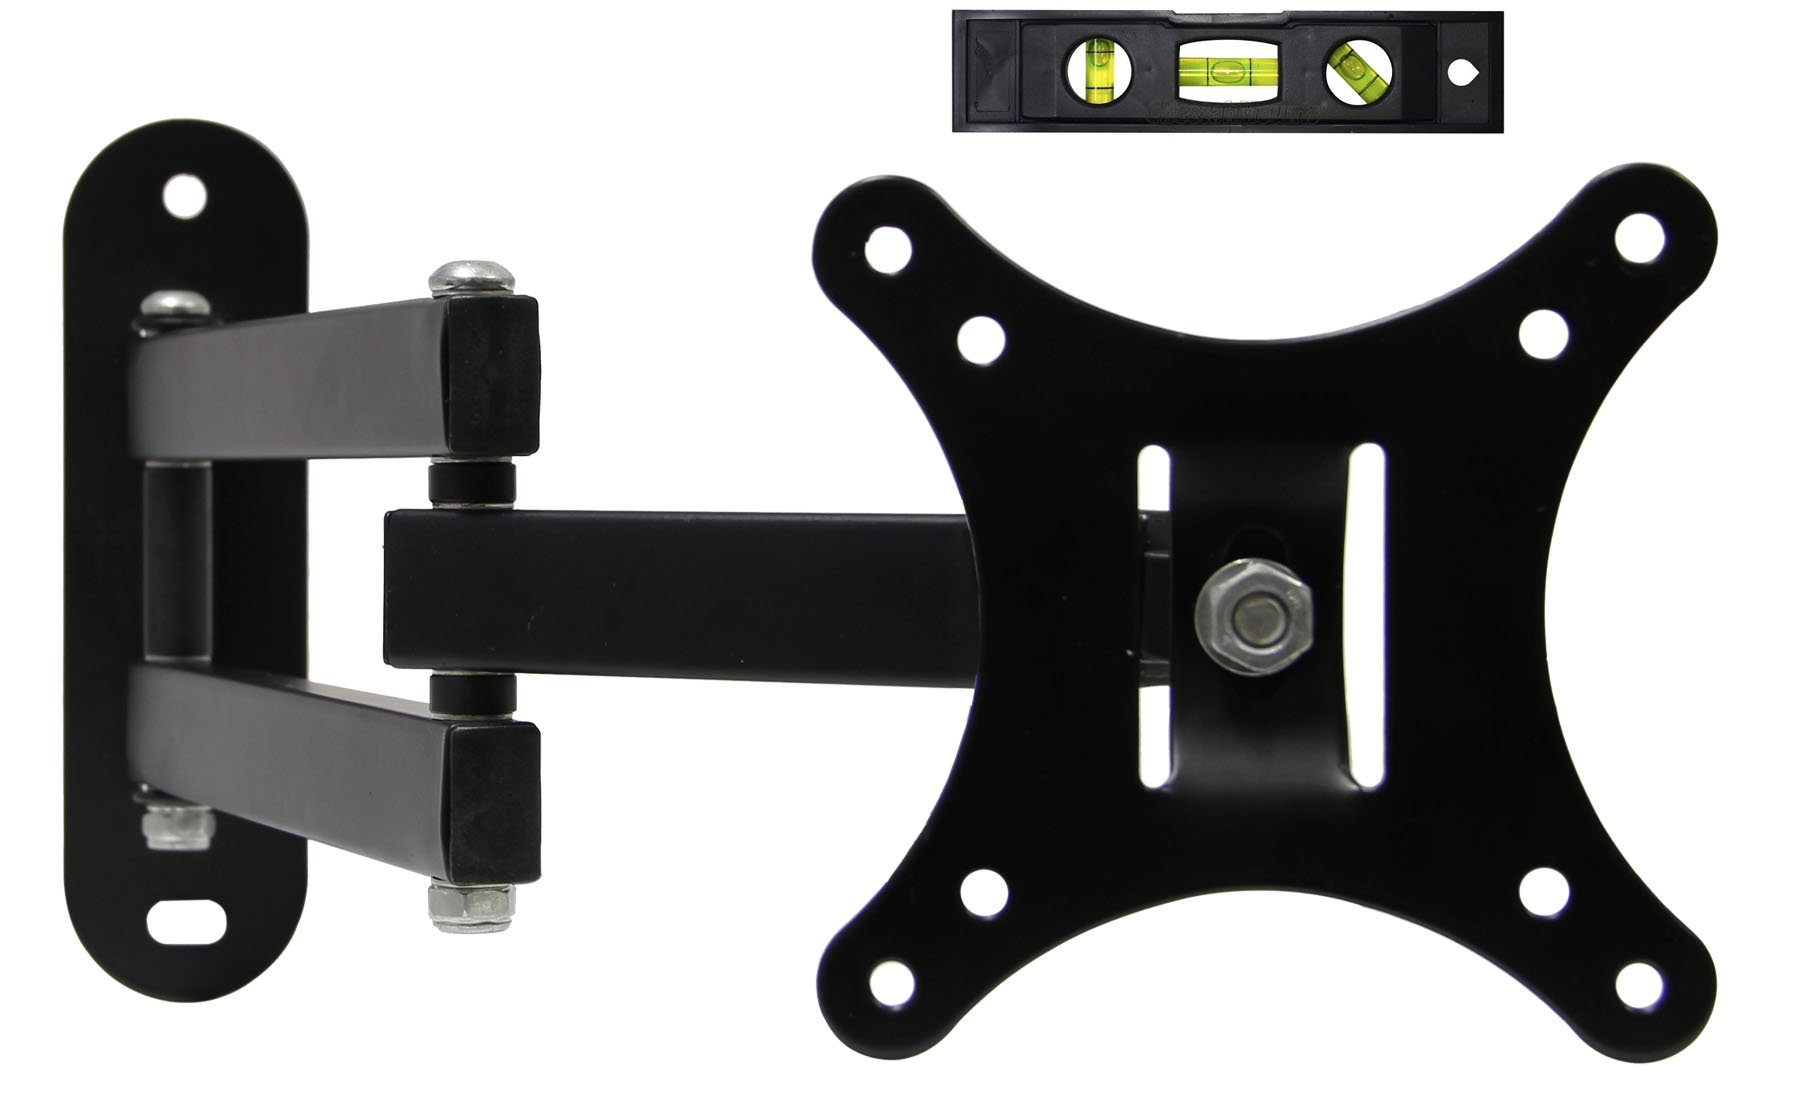 EASYGOING Full Motion Articulating Swivel Tilting Single Flat Screen LCD TV Wall Mount Bracket for 14''-24'' Flat Screen Displays, VESA 75 and 100 Compatible, 40 lb Capacity Black